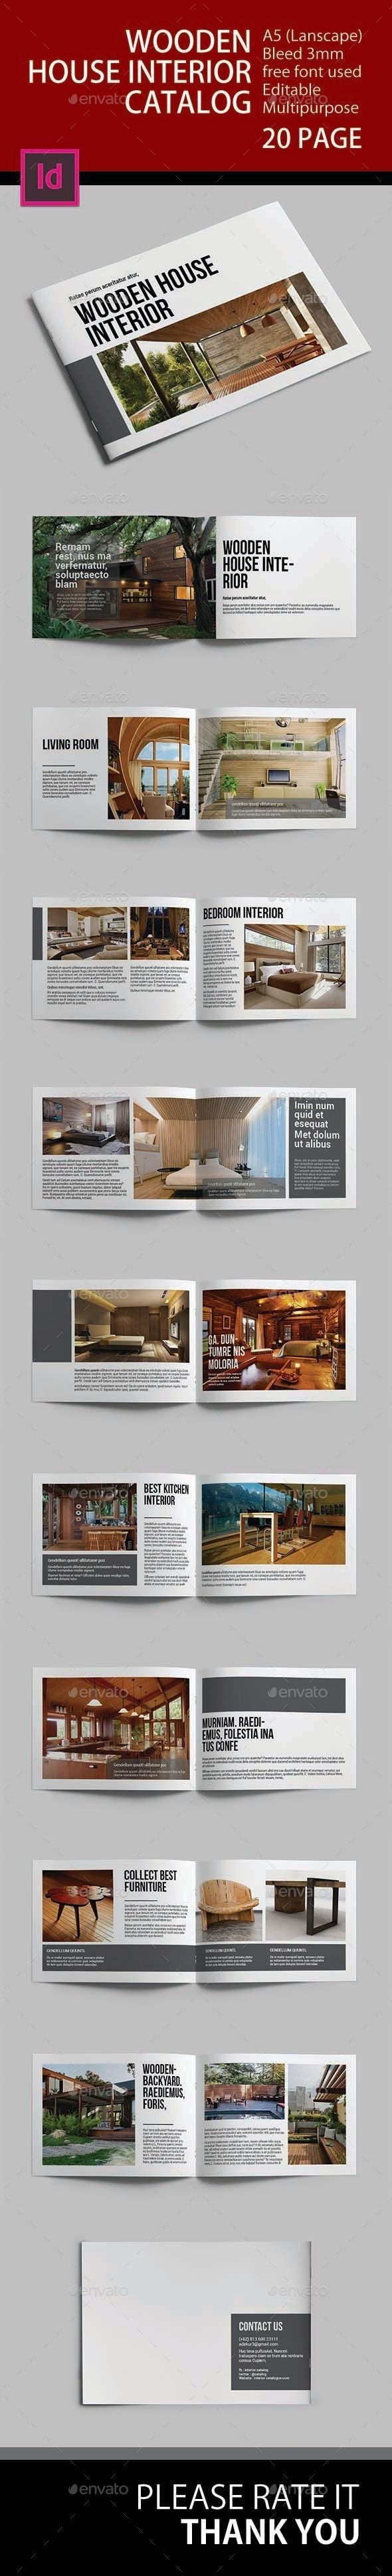 House Interior Catalog Brochure Tempalte #design #catalogtempalte Download: http://graphicriver.net/item/house-interior-catalog/11670832?ref=ksioks